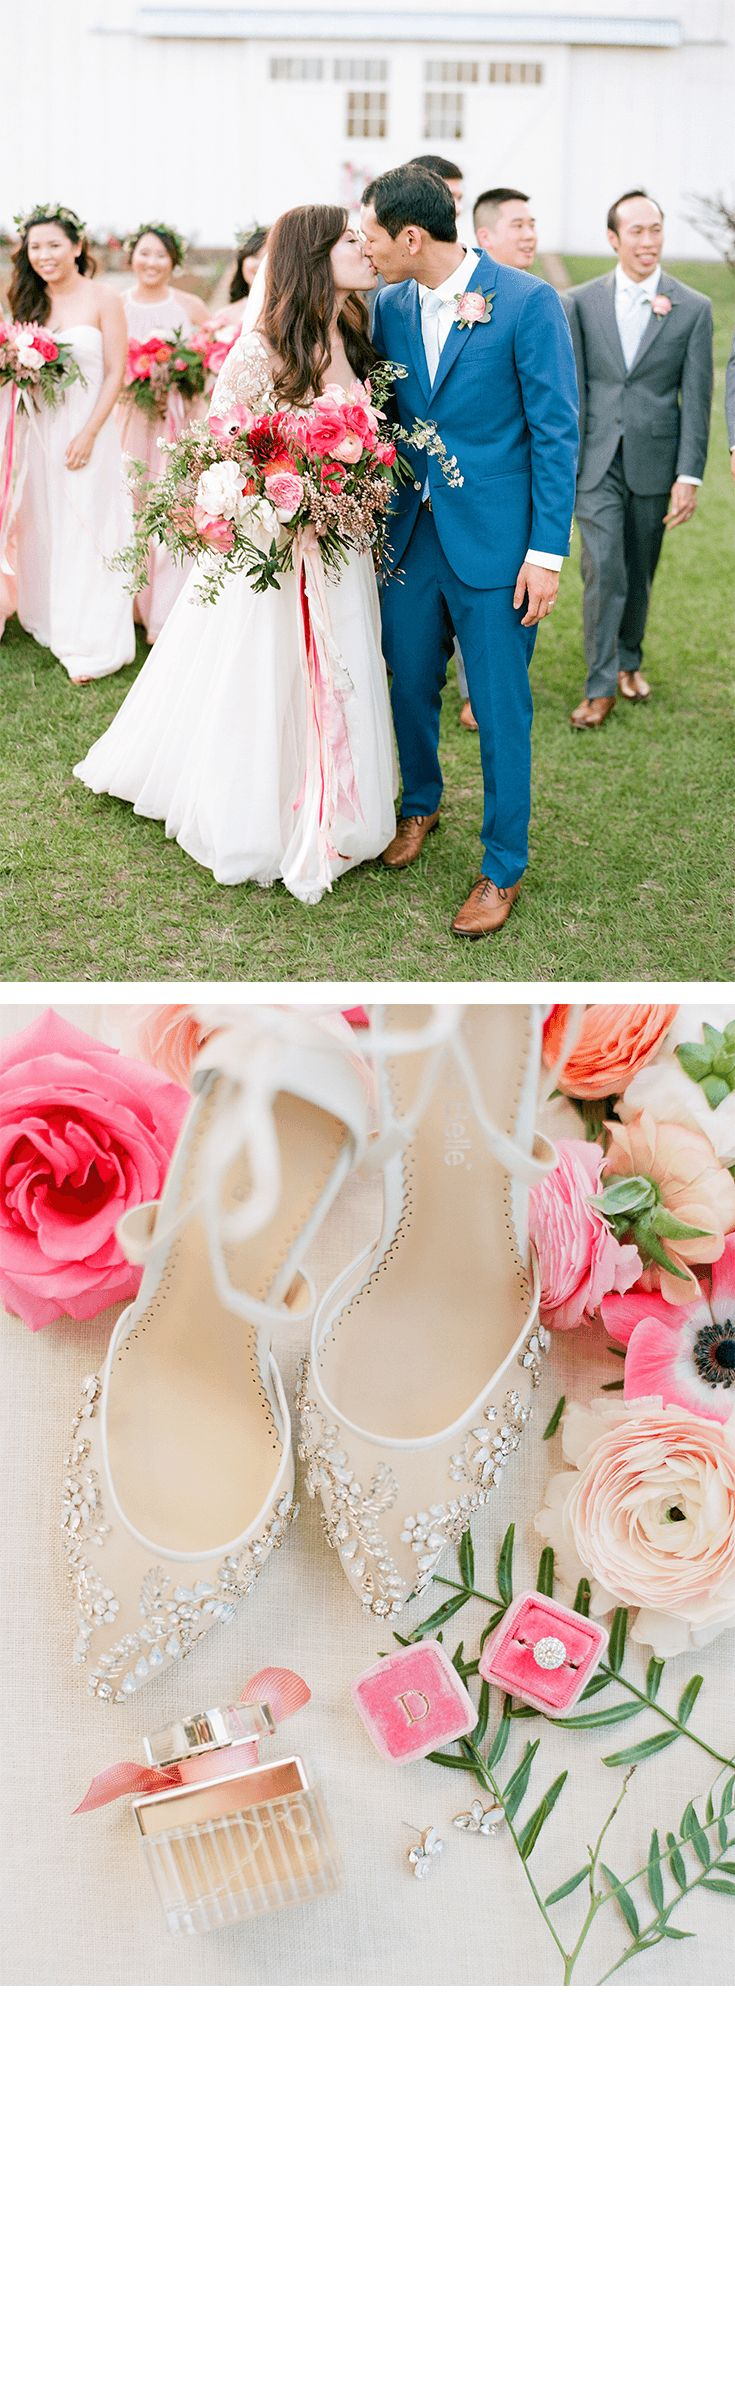 We LOVE the blush, pink, whites and green color hues on our #RealBride Deborah's rustic barn outdoor wedding! Wearing our Bella Belle Florence, a crystal embellished ivory wedding shoes with ballerina inspired tie ankle straps with a Hayley Paige long sleeve floral and tulle feminine wedding dress, Deborah looks gorgeous and beautiful!